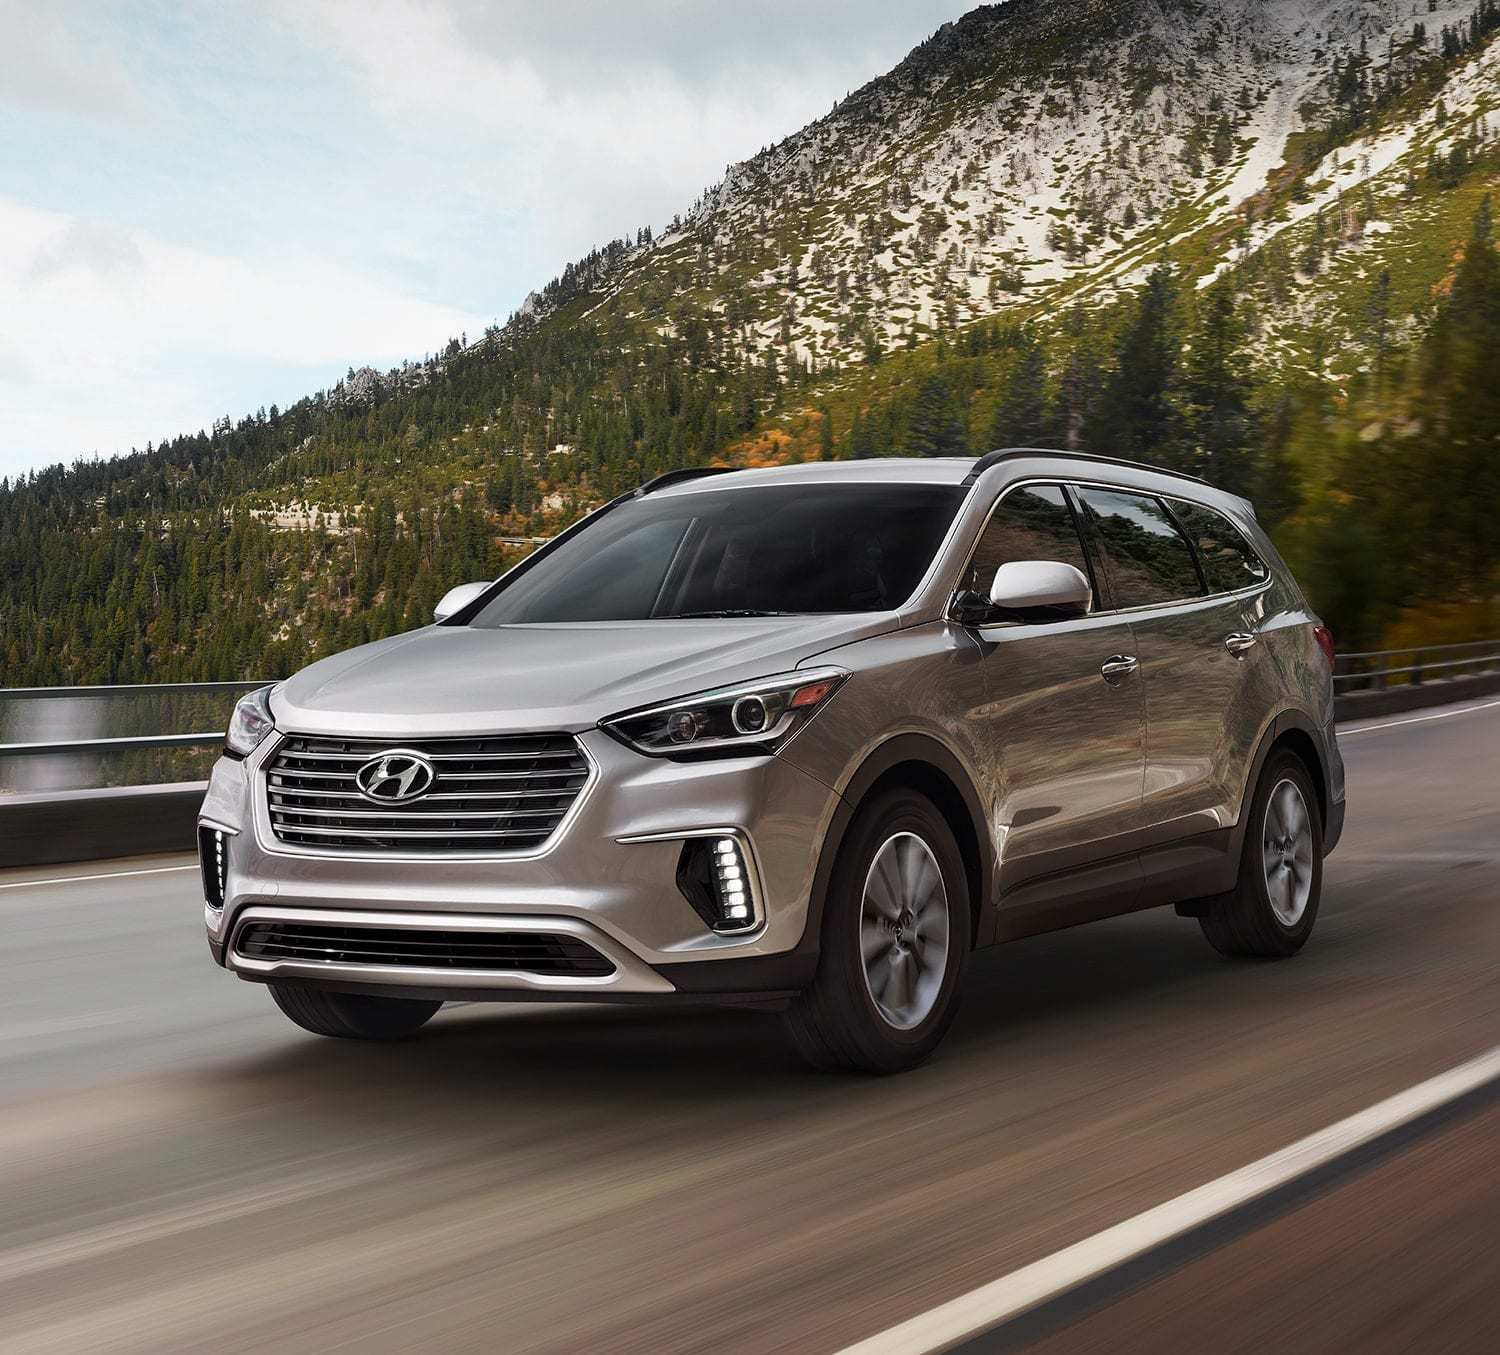 55 Best Review 2019 Hyundai Usa Review by 2019 Hyundai Usa